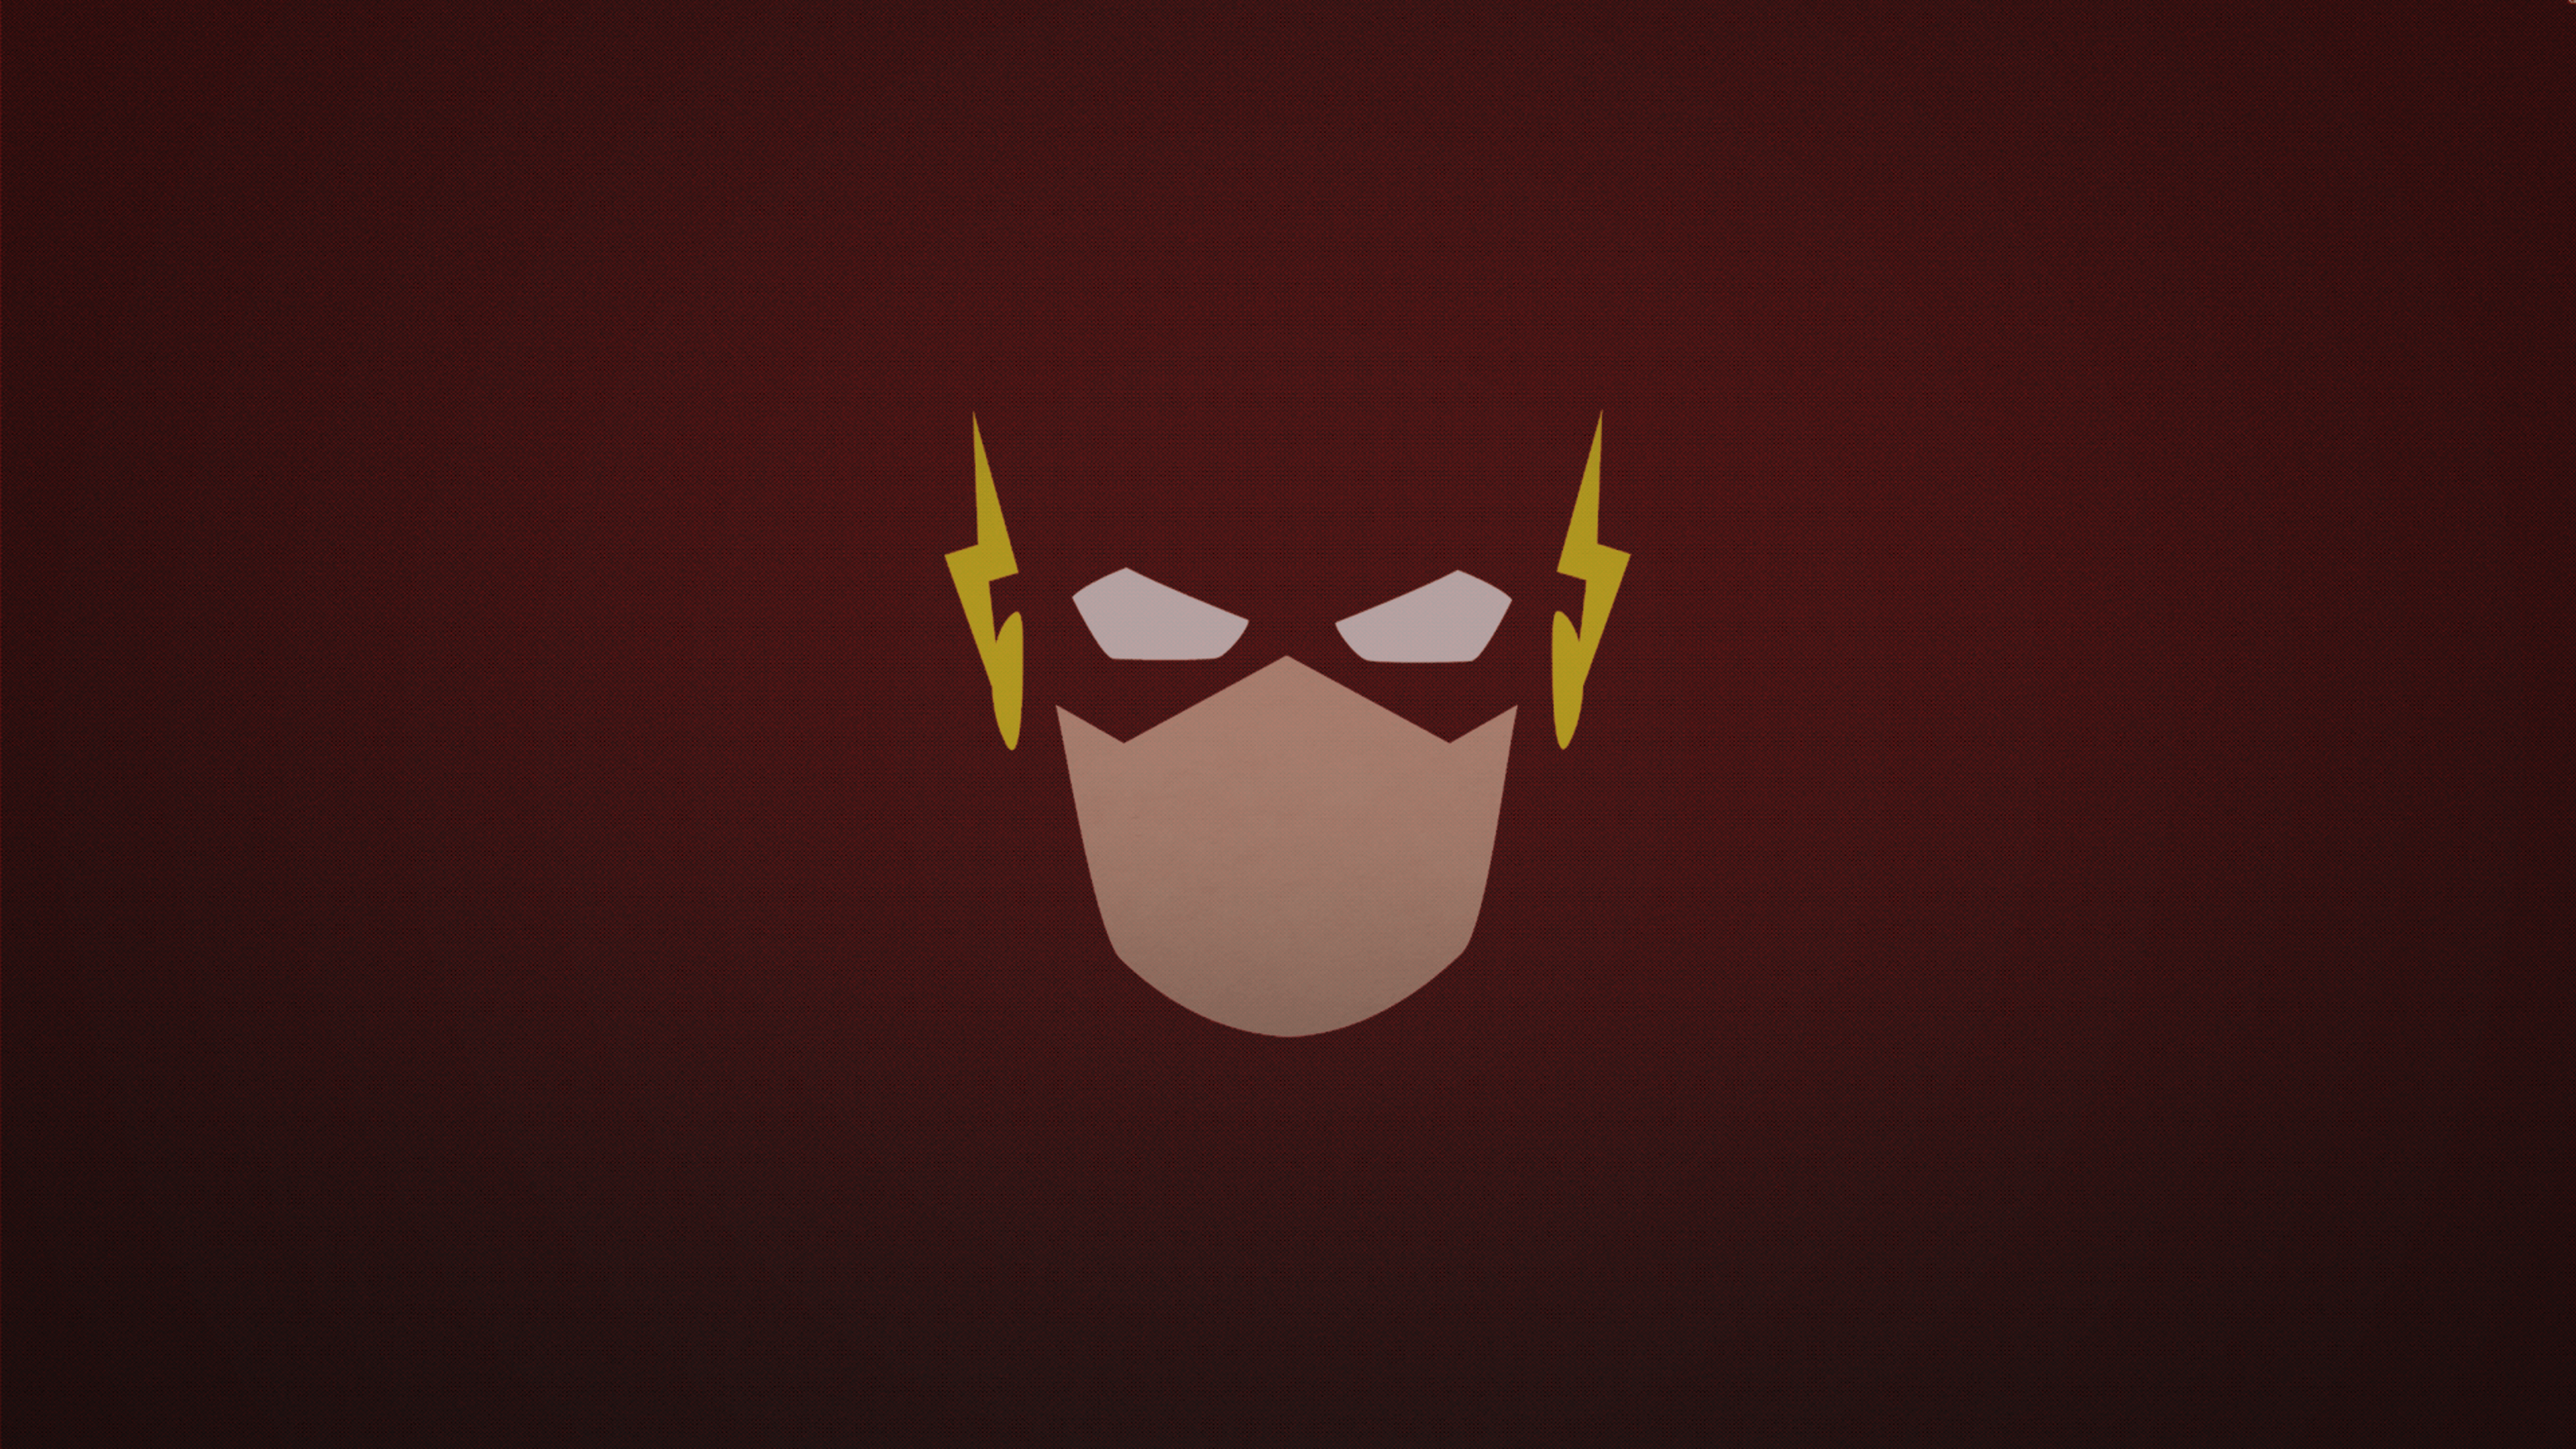 The Flash Minimalism Wallpapers